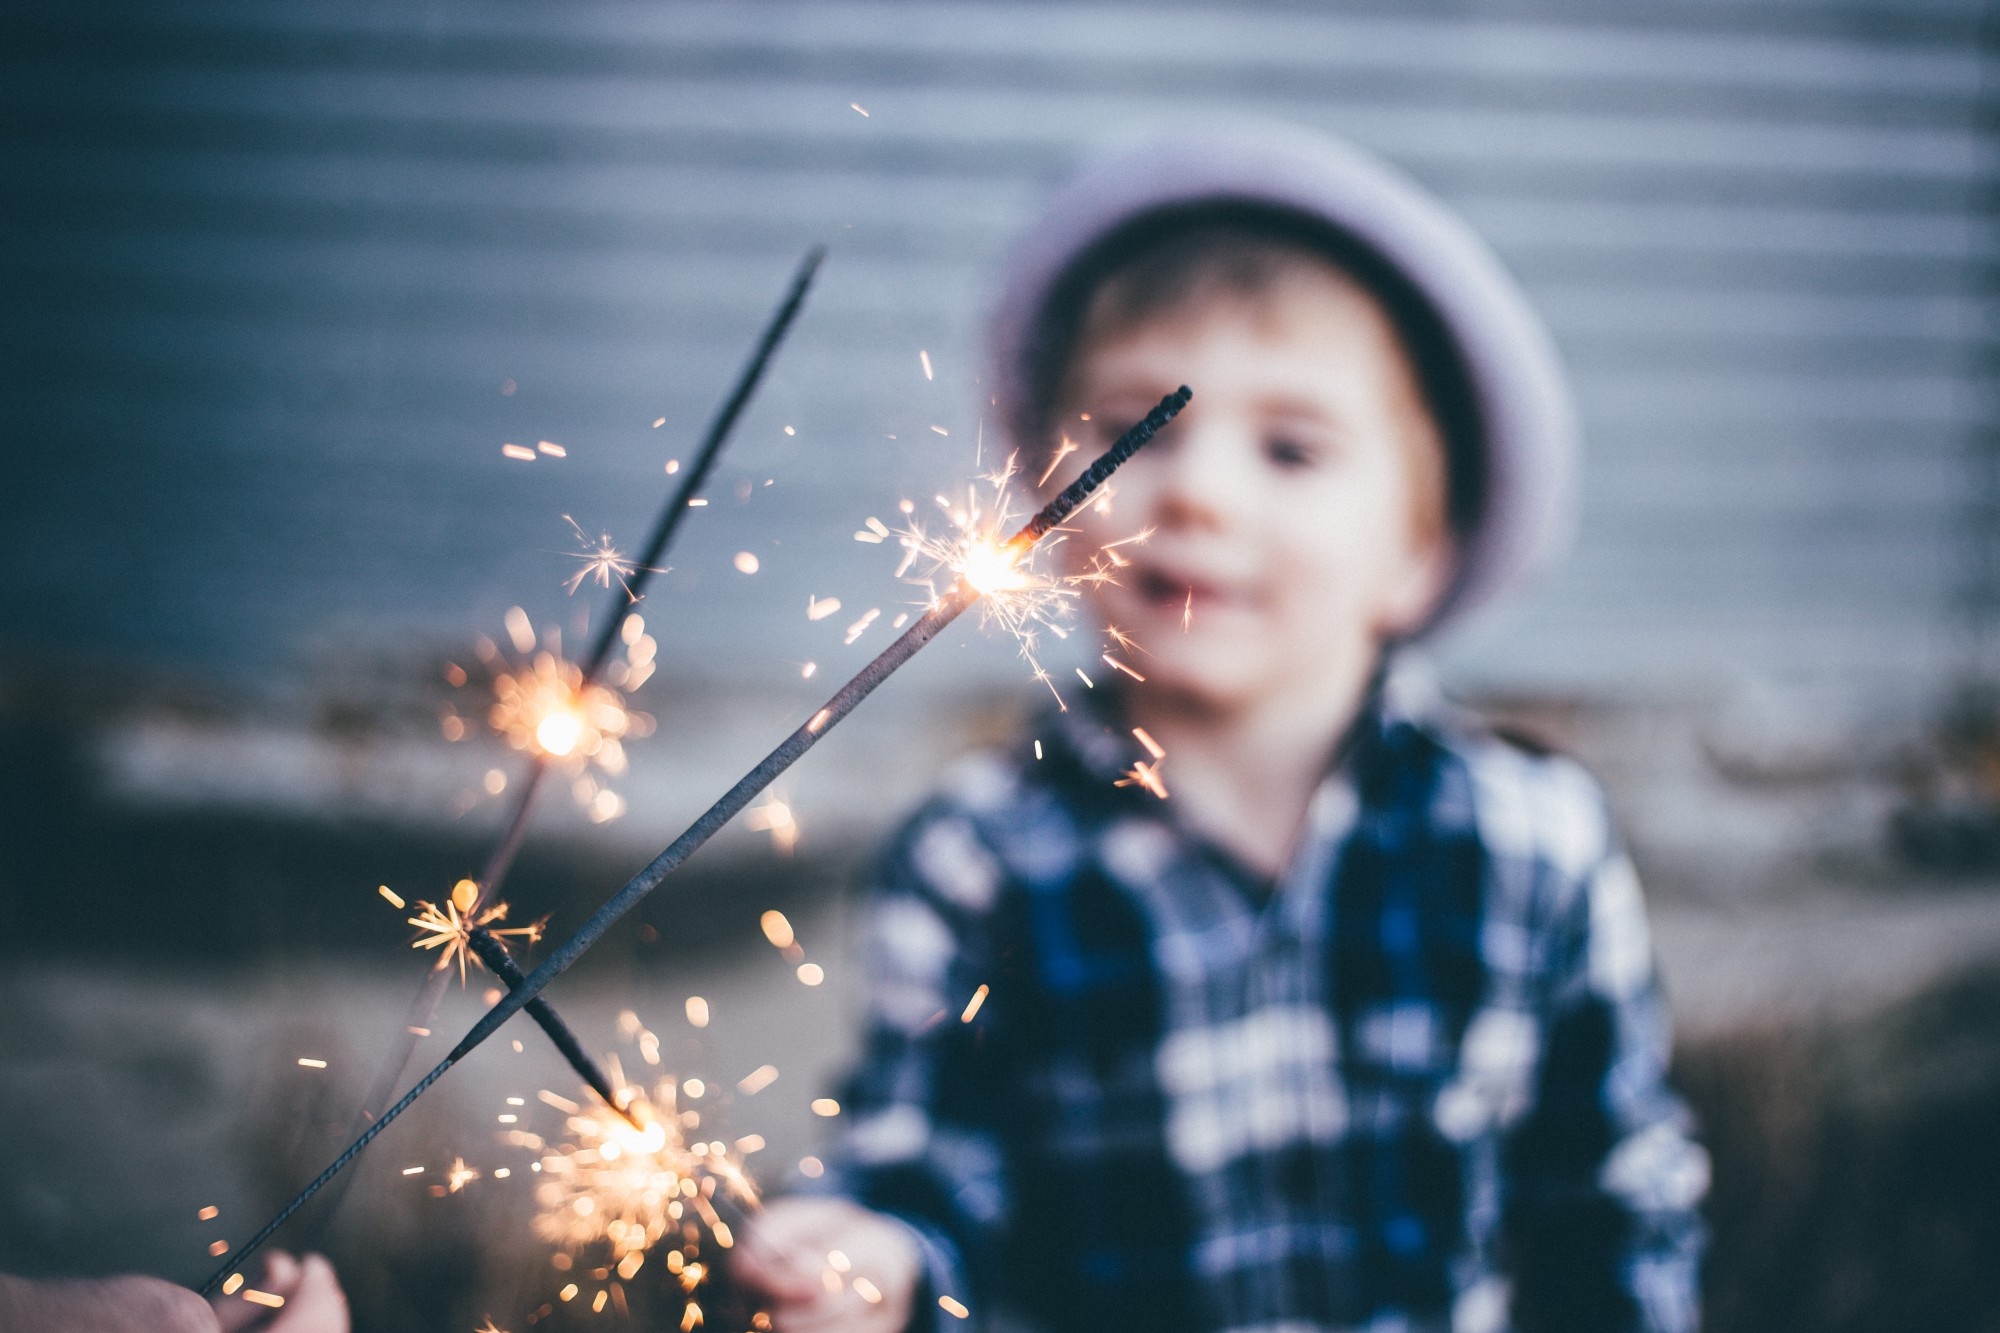 It is not only kids that gets distracted by sparkling or shiny obejcts